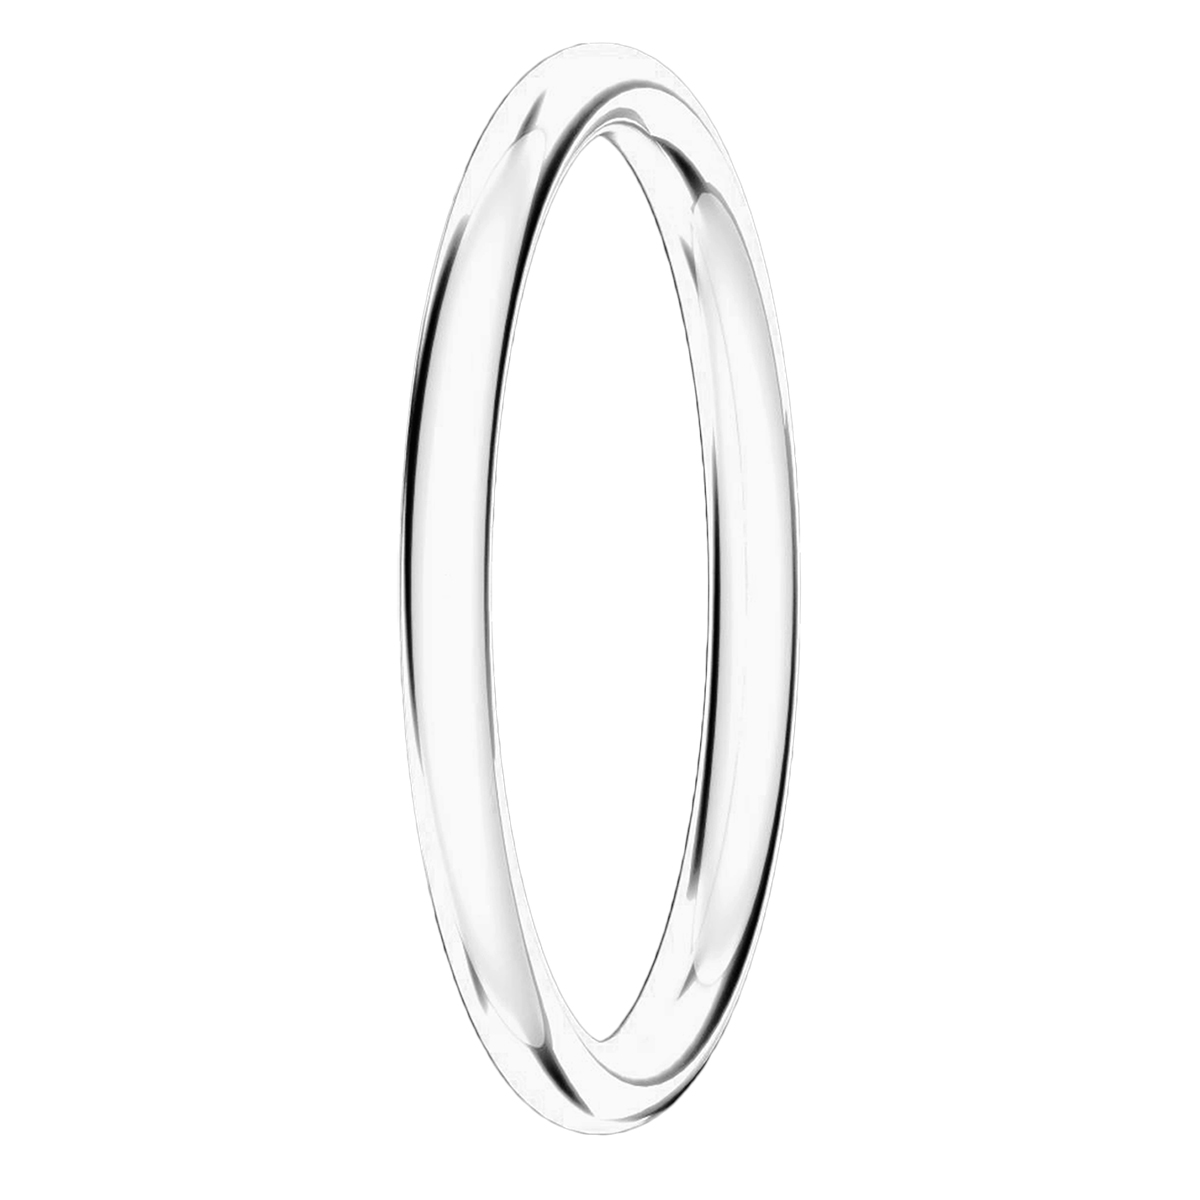 Image of   Spinning Jewelry ring - Epic - Rhodineret sterlingsølv